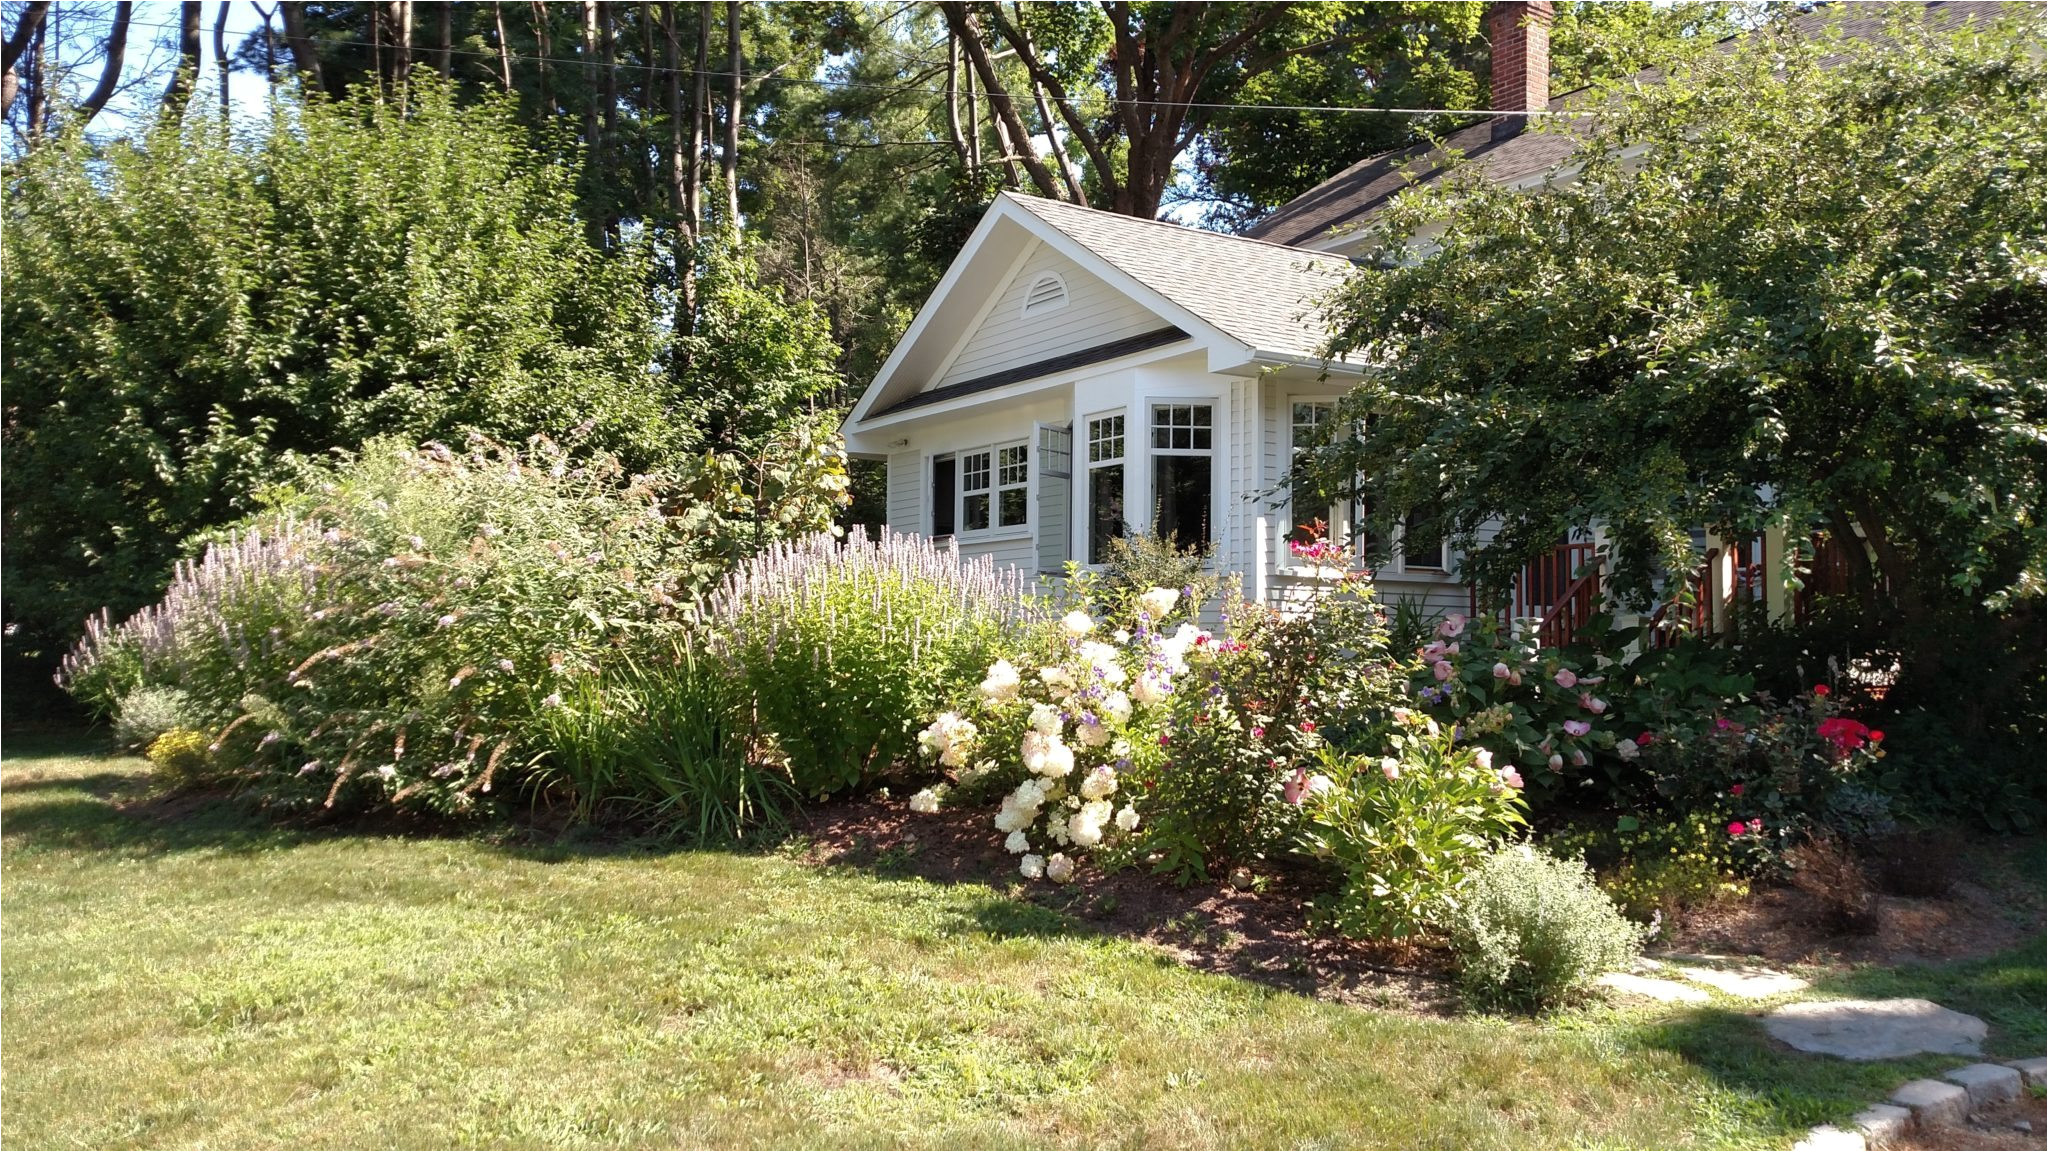 planning to sell your home next spring fall is the time to spruce up your yard